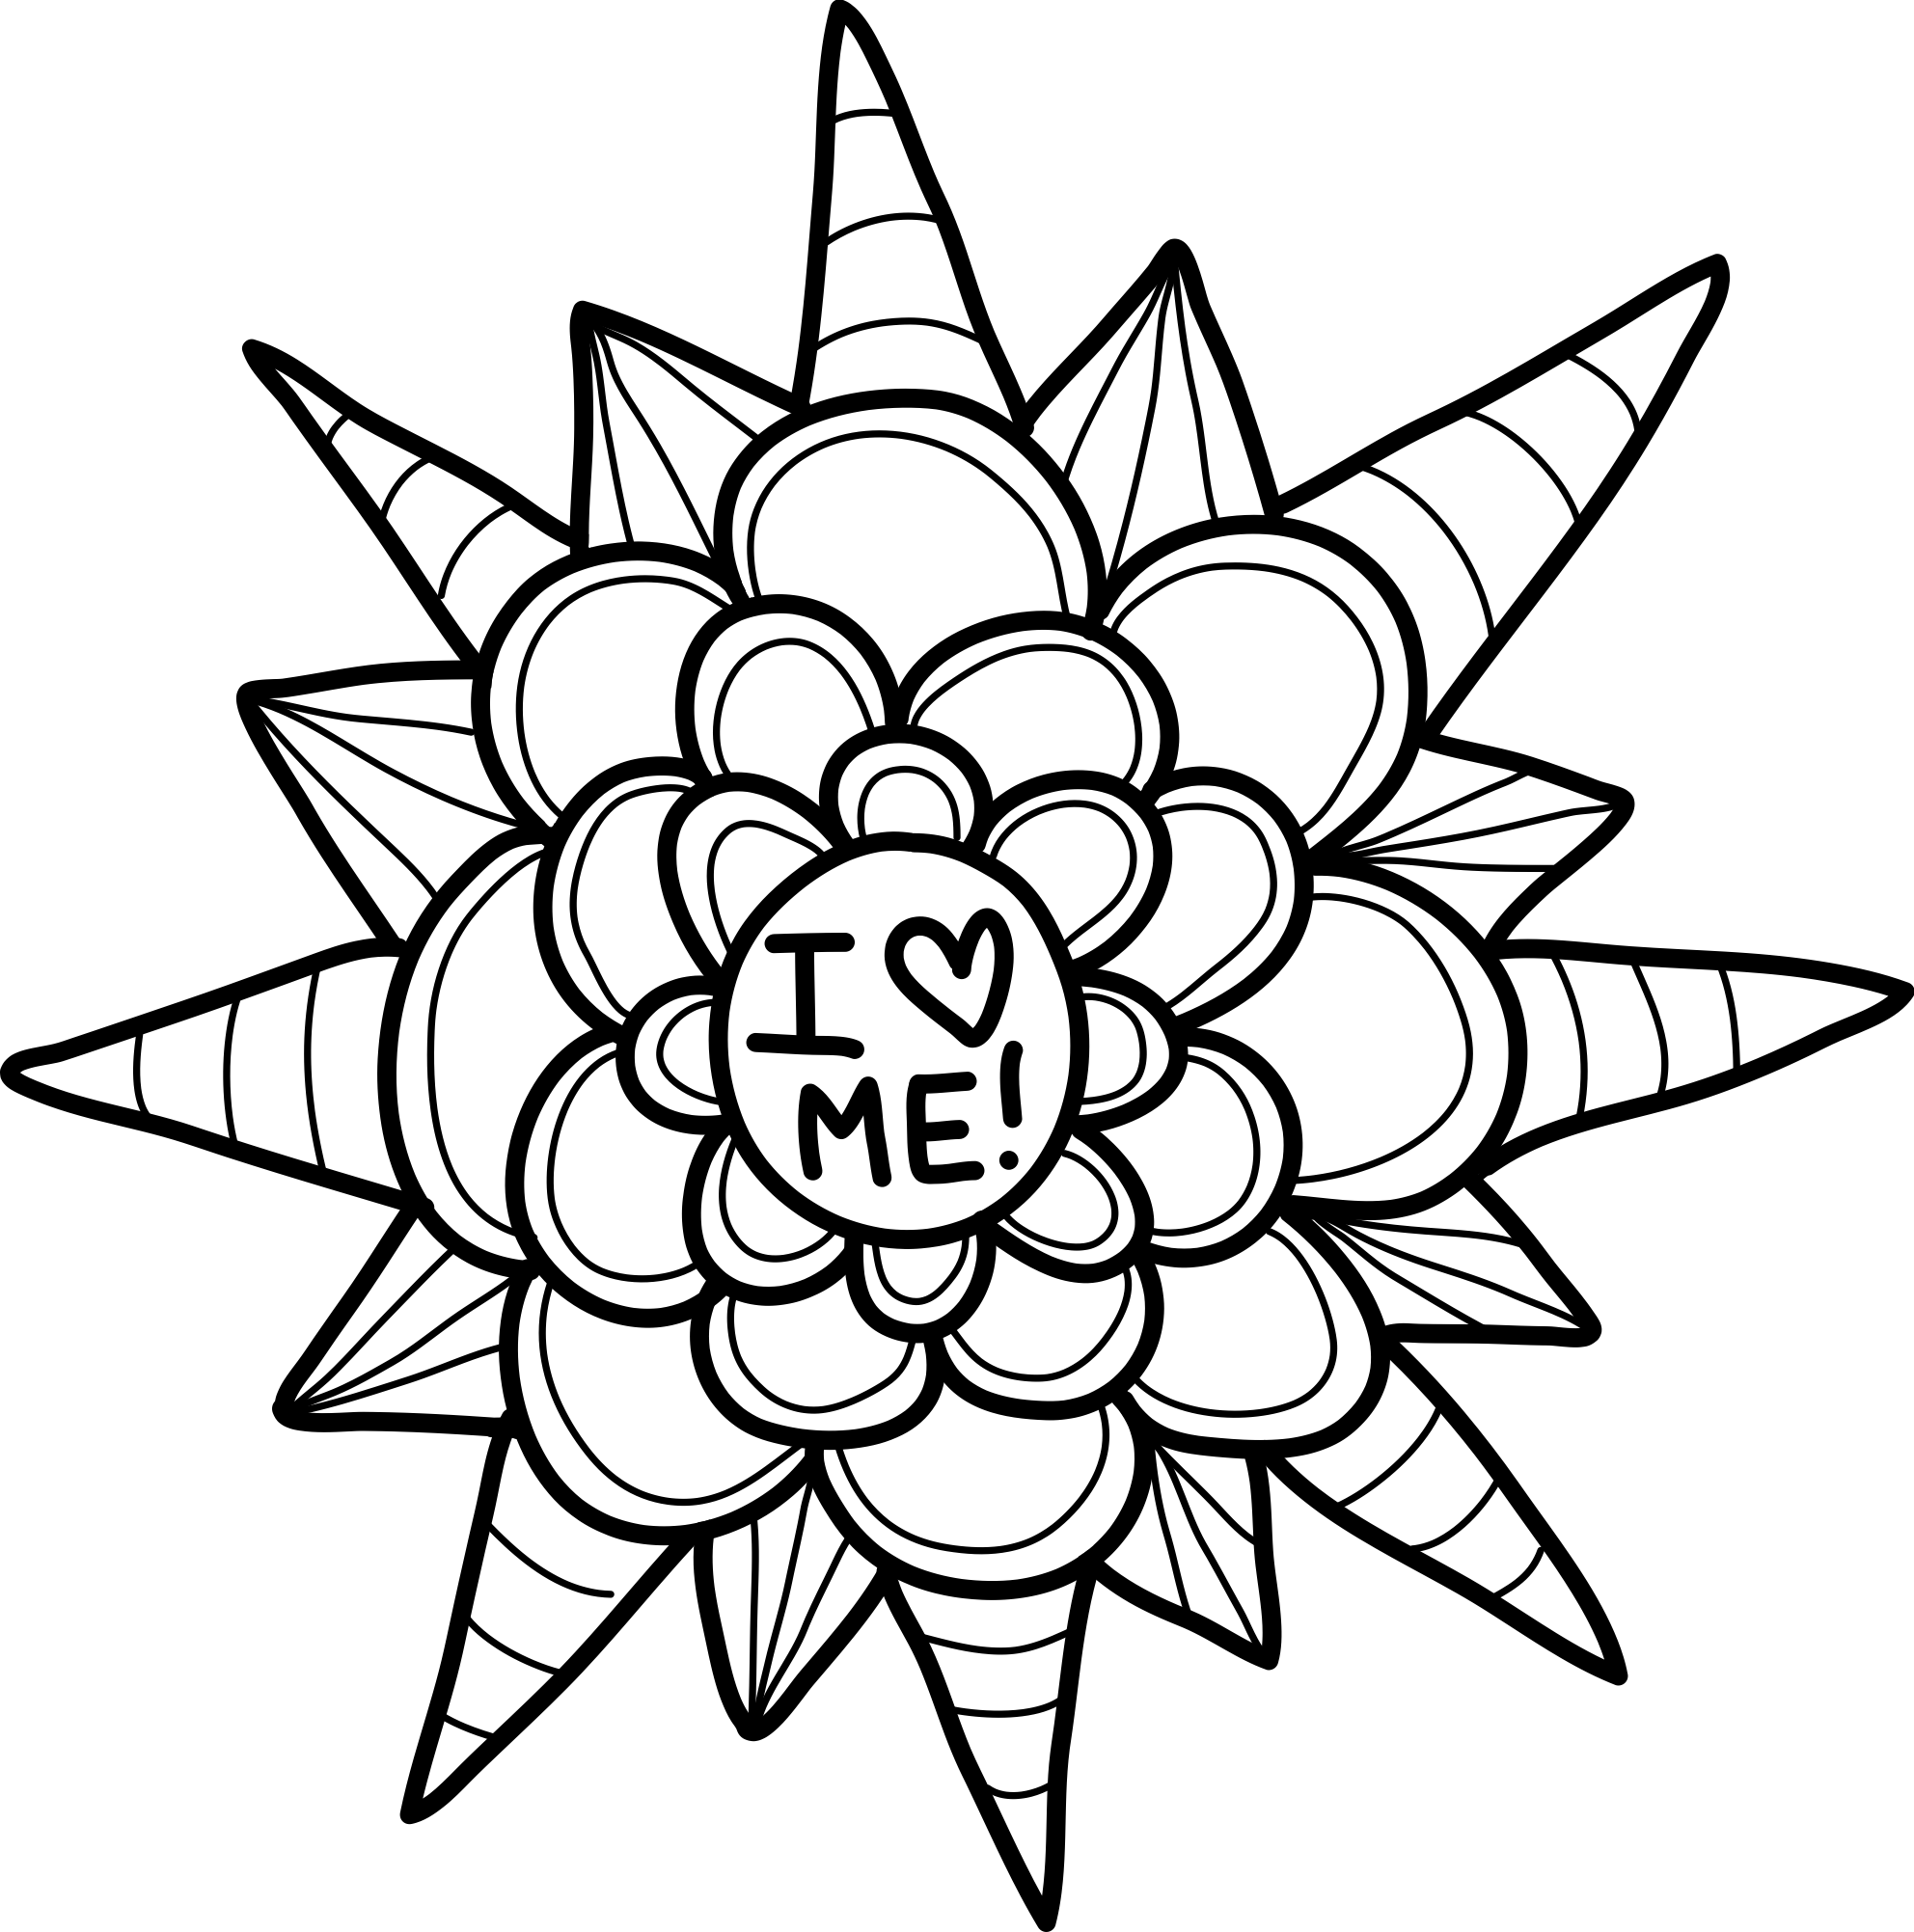 You Are Loved Mandala Coloring Pages Guided Journal FREE DOWNLOAD